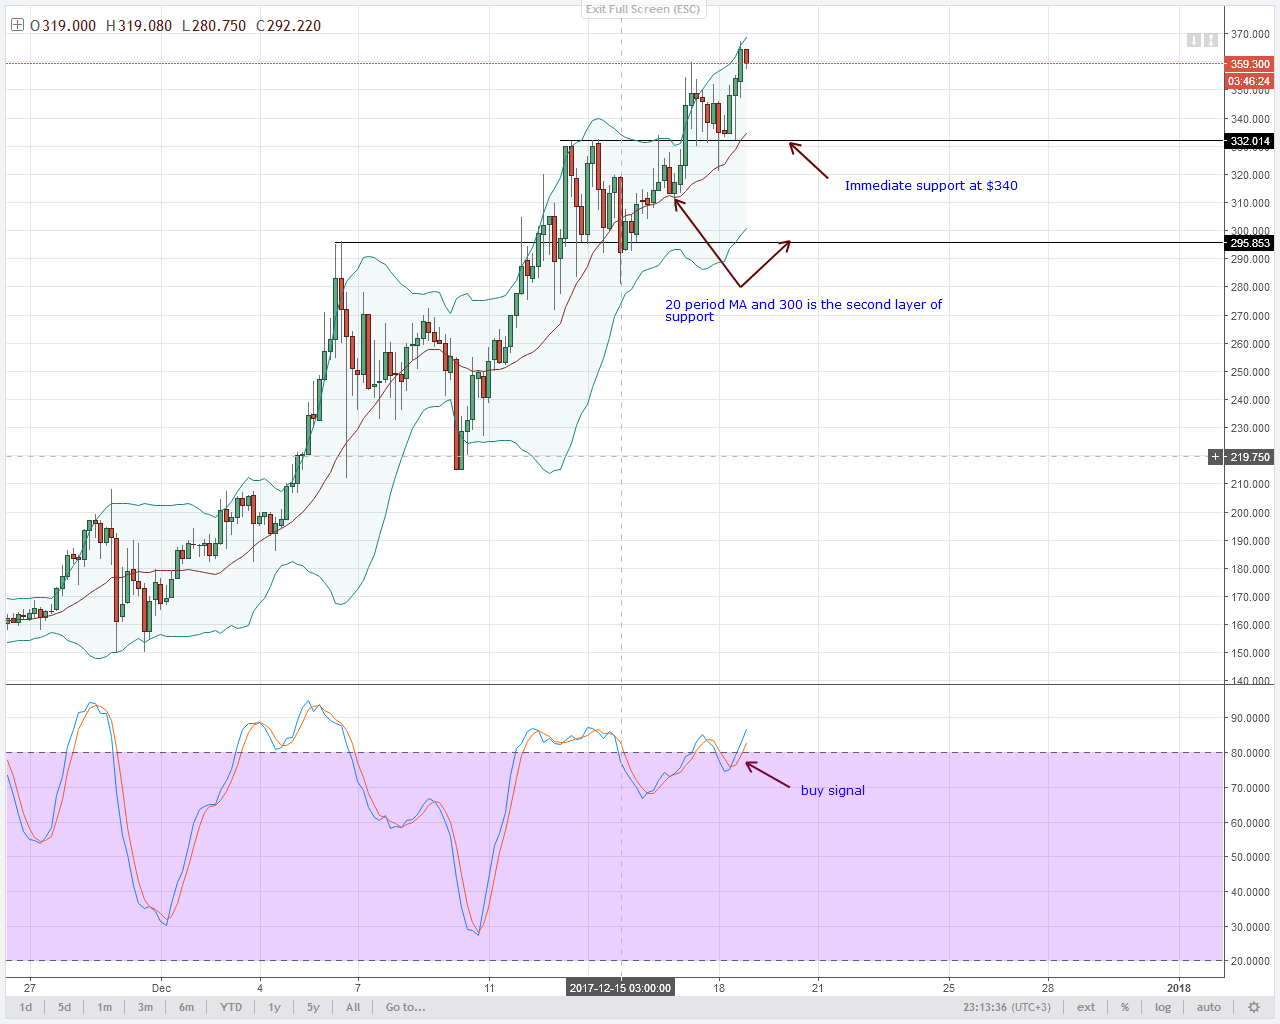 Monero short term bears 4HR chart technical analysis